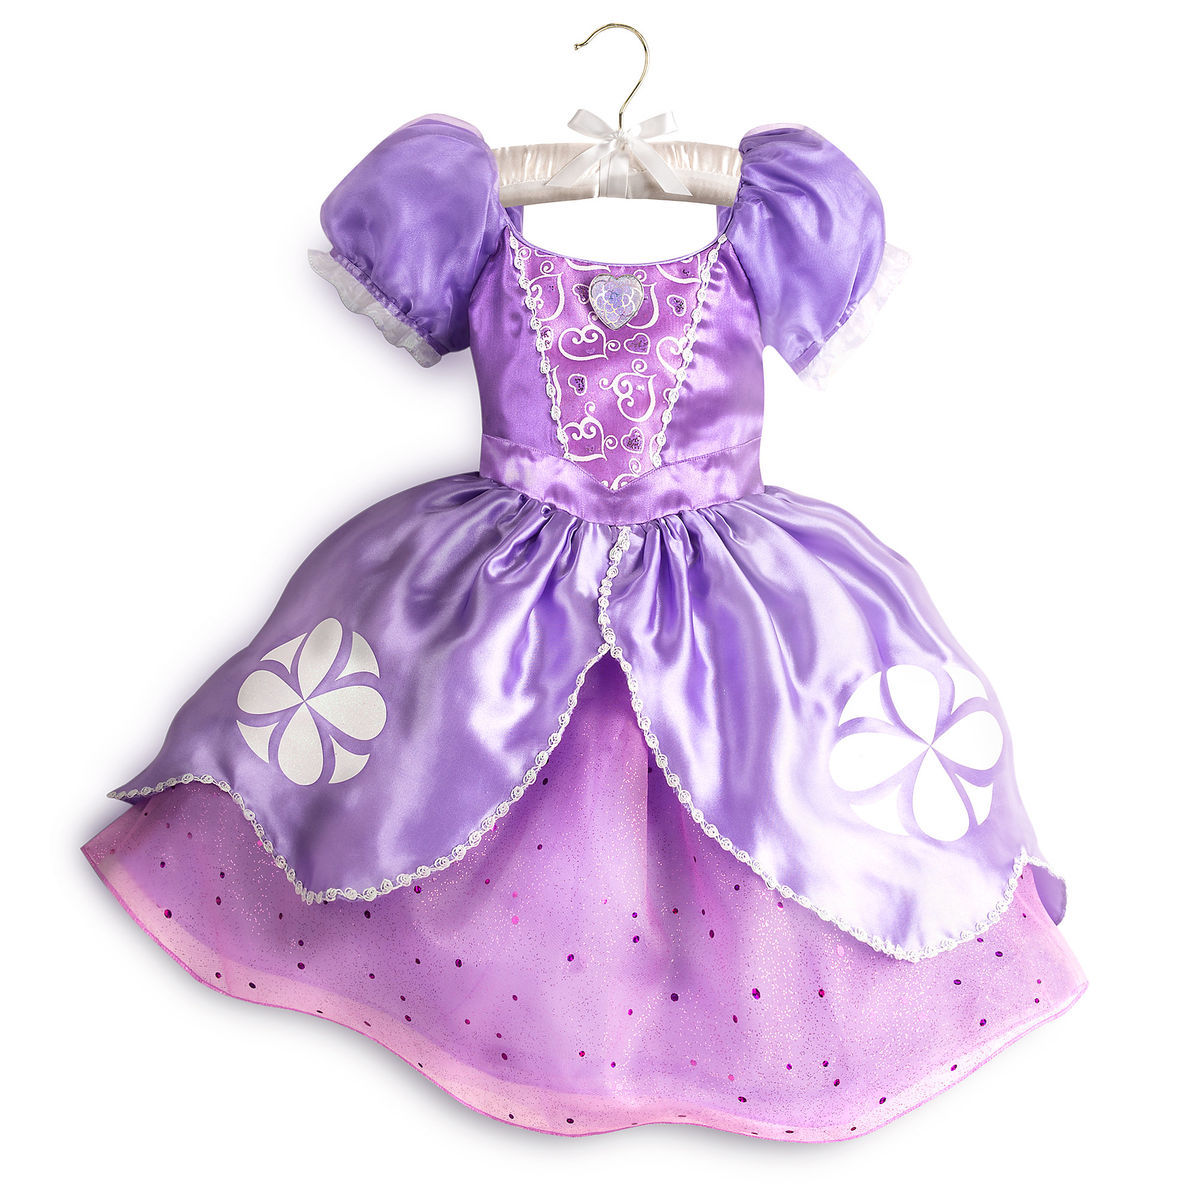 Sofia the First Costume for Kids | shopDisney